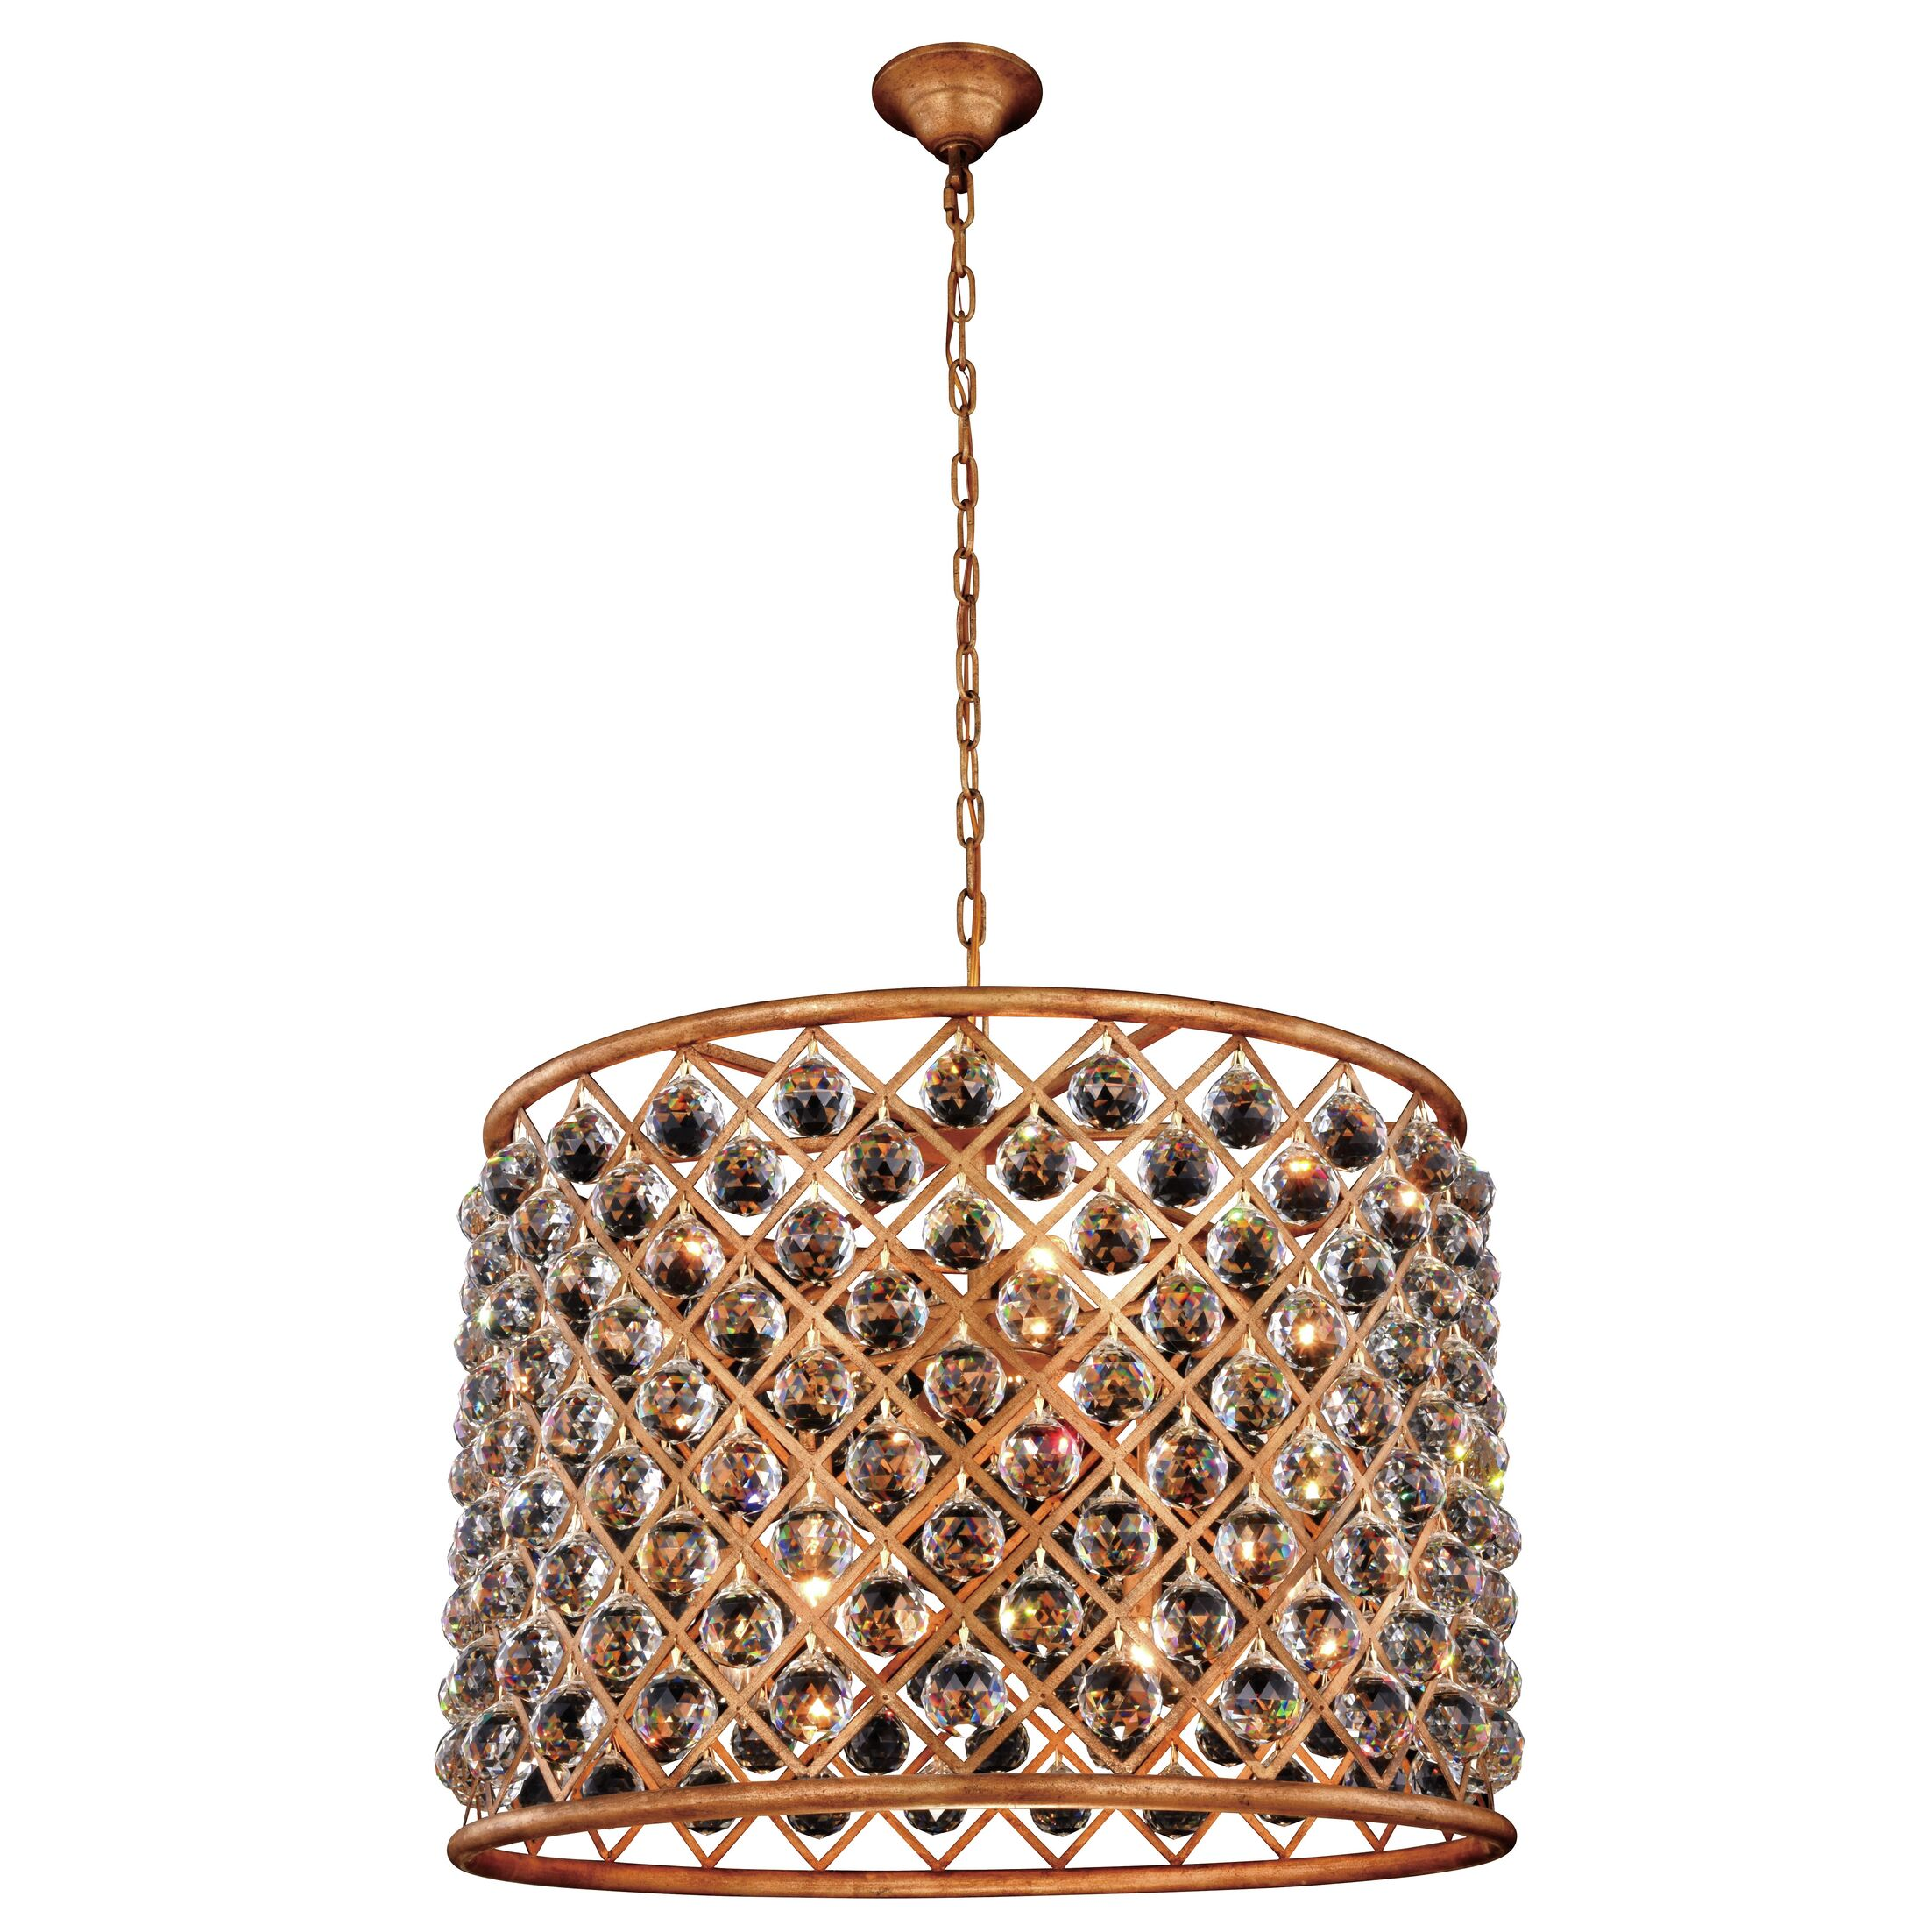 Morion 8-Light Pendant